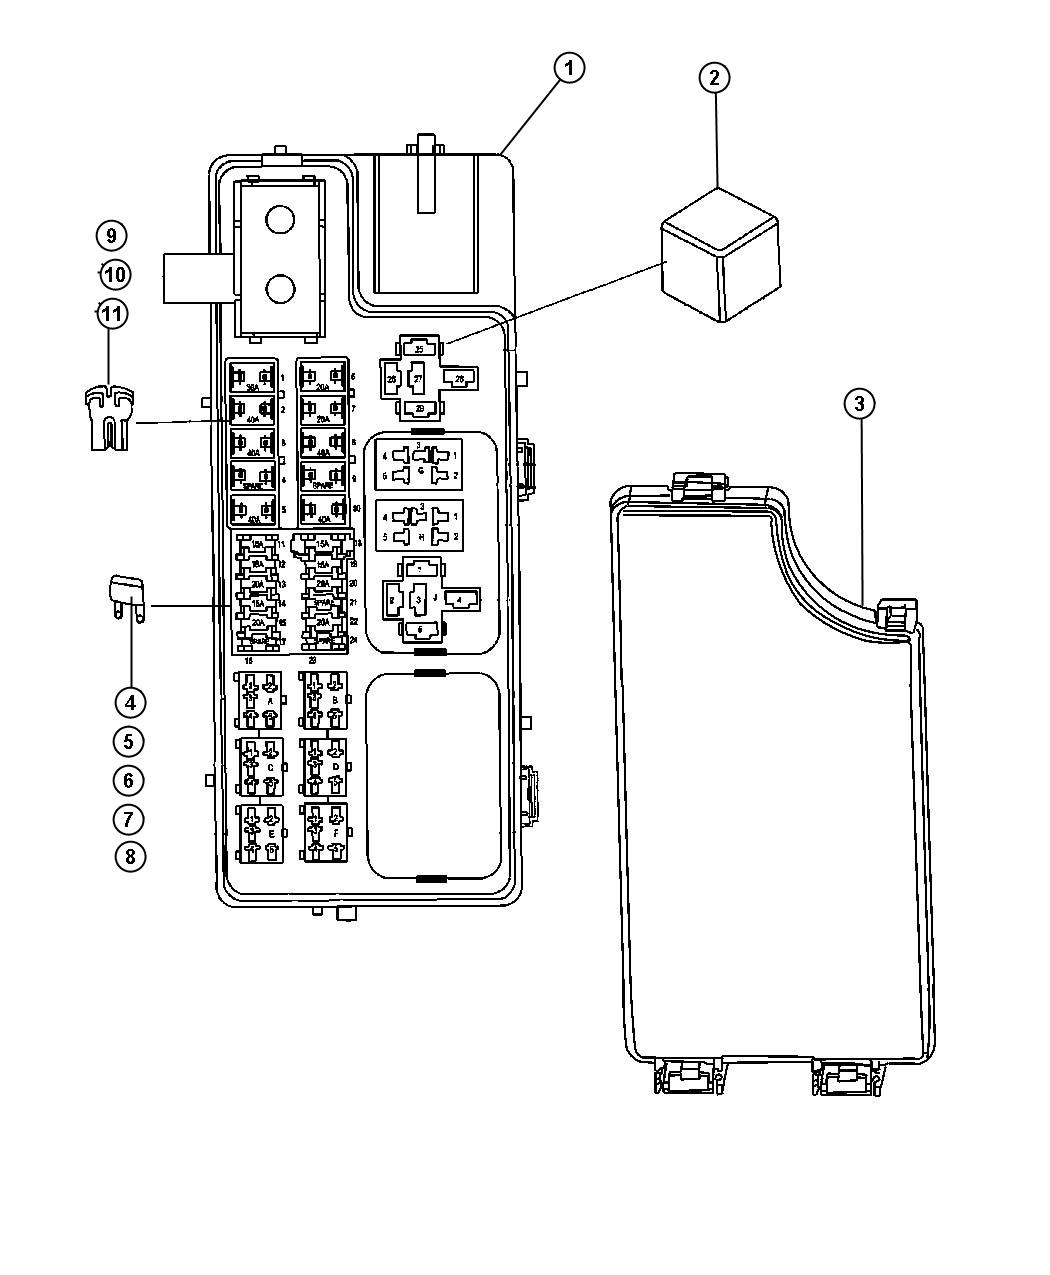 small resolution of jeep patriot fuse box 21 wiring diagram images wiring diagrams 2008 chrysler sebring convertible fuse box diagram 2008 jeep patriot fuse box diagram